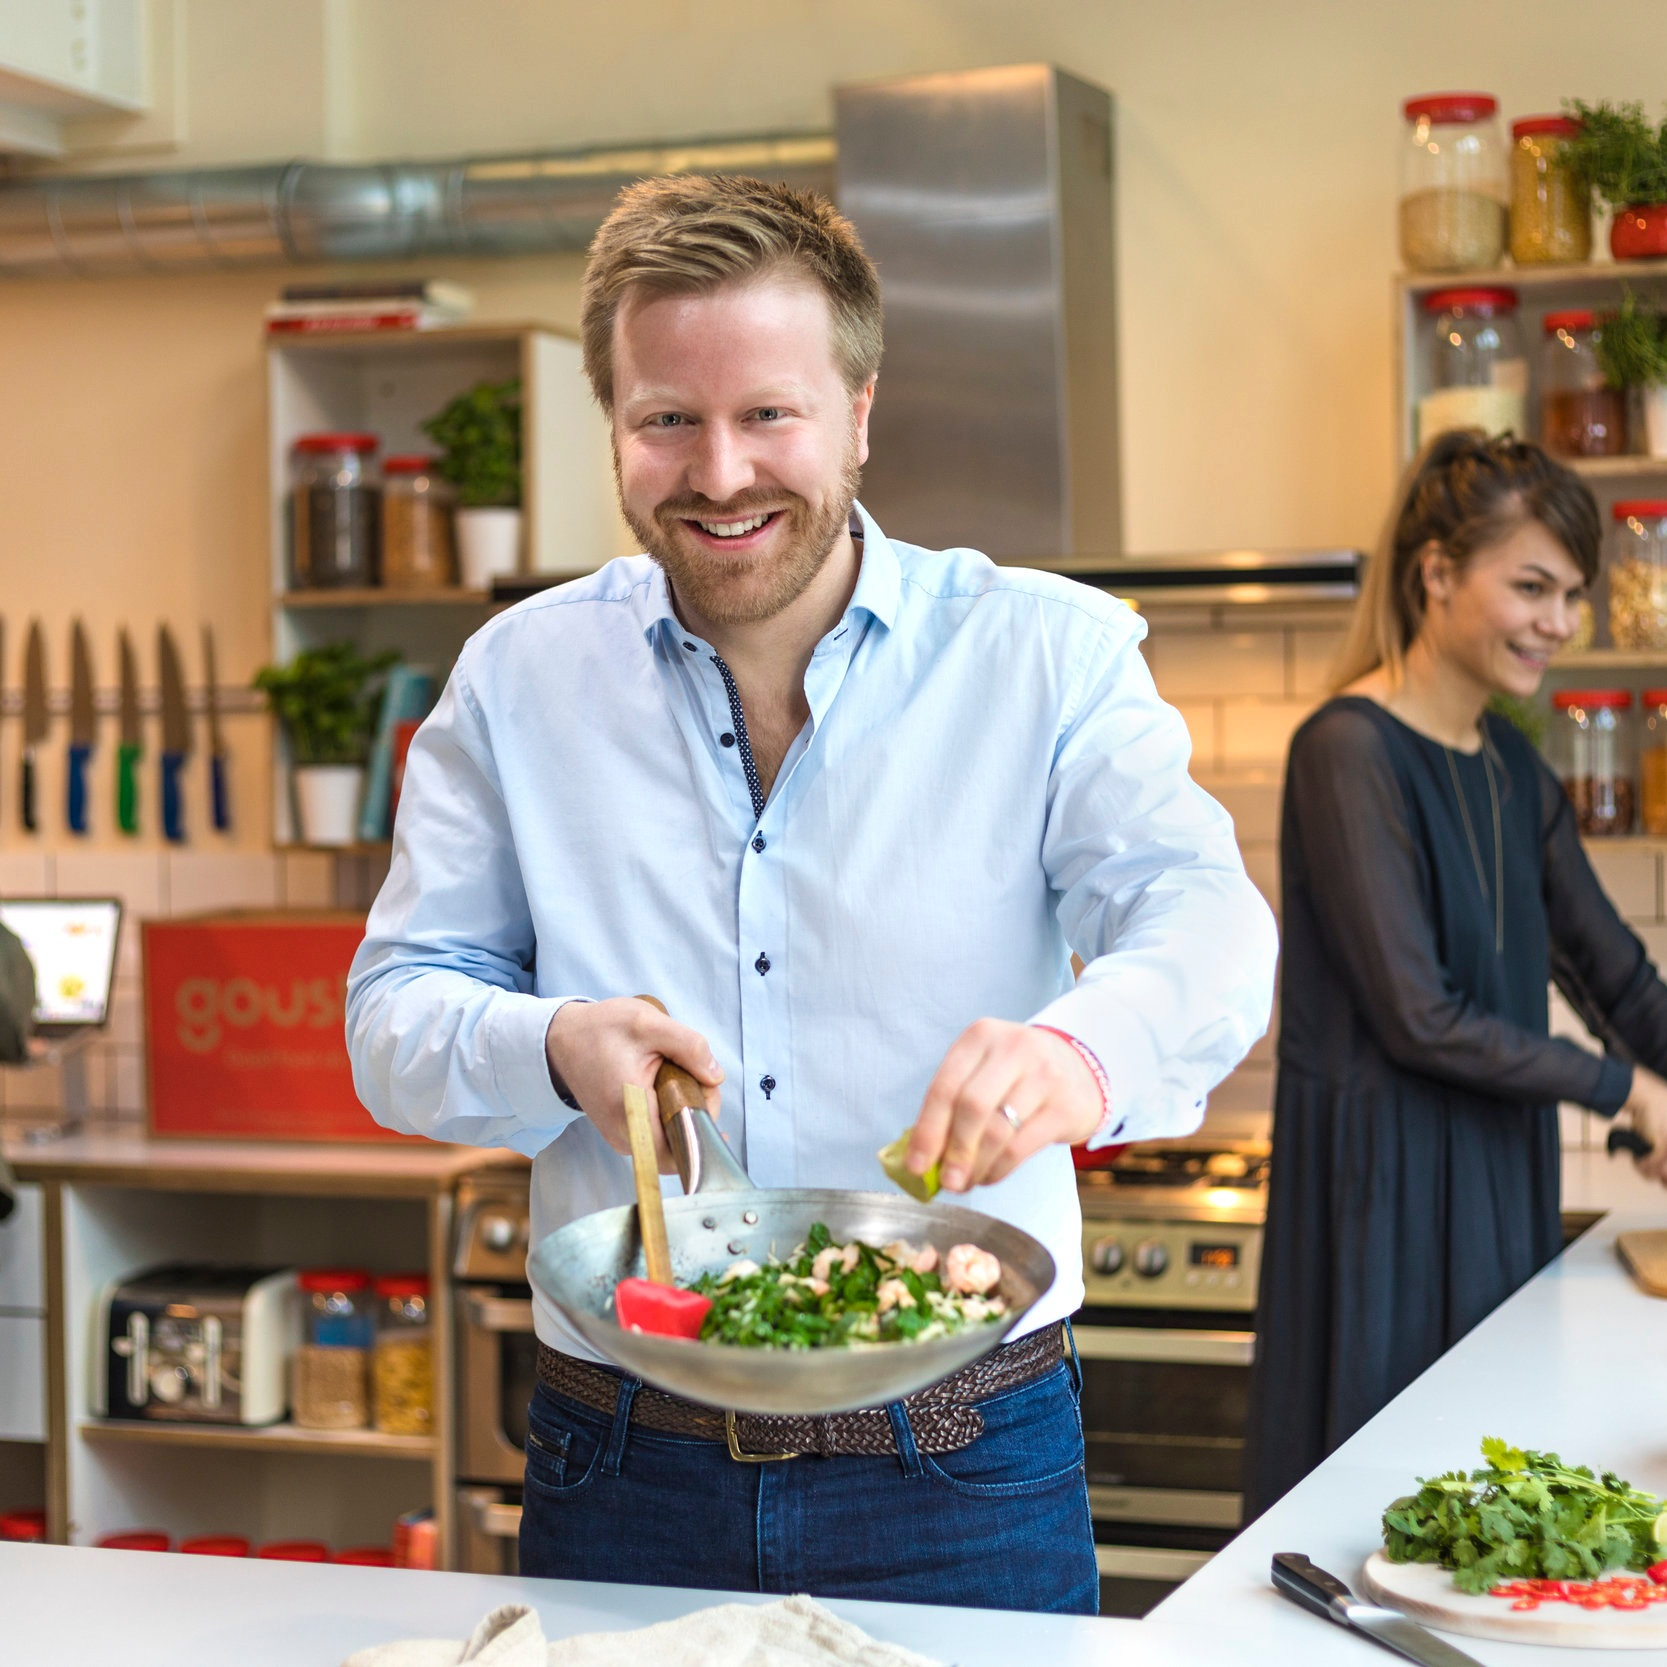 """Gousto - Investment received: £72.6 millionJobs created: 500+German-born entrepreneur Timo Boldt is the founder and CEO of Gousto, the recipe box company. Sending almost 2 million meals to customers each month, Gousto is scaling fast with consistent year on year growth.""""It's important the language of future legislation is inviting of the talent we require."""""""